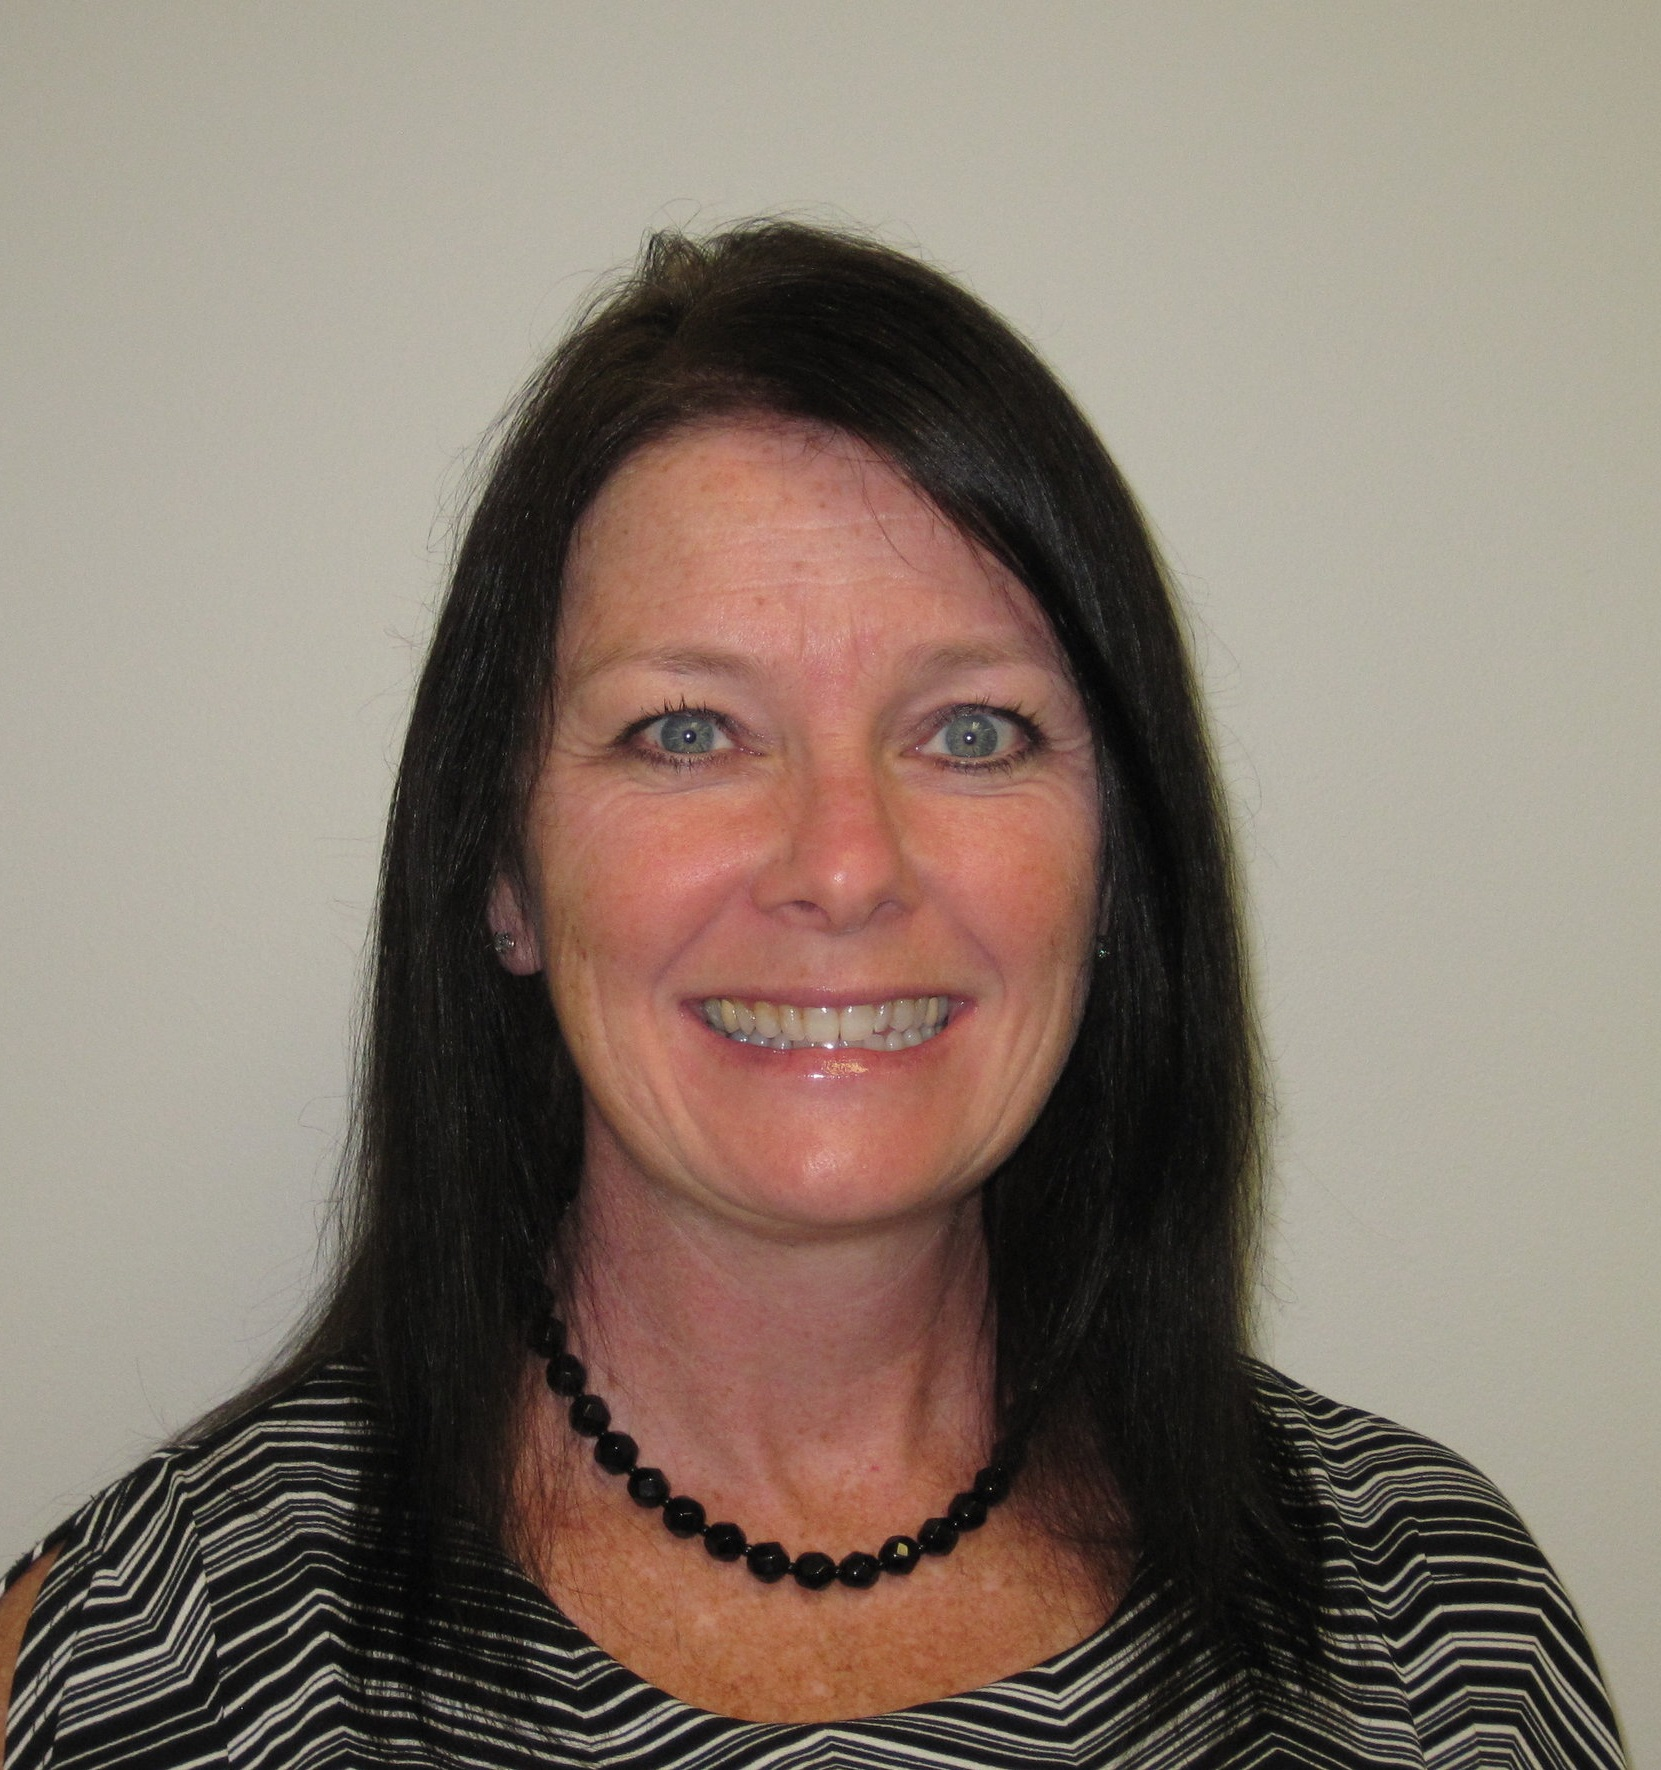 Kelly Morgan - AA - Assistant To The President , began her career at Neighbor To Family in 1999 and was promoted to her current position in 2004. She holds an Associate Degree in Liberal Arts and Humanities from Lackawanna College.